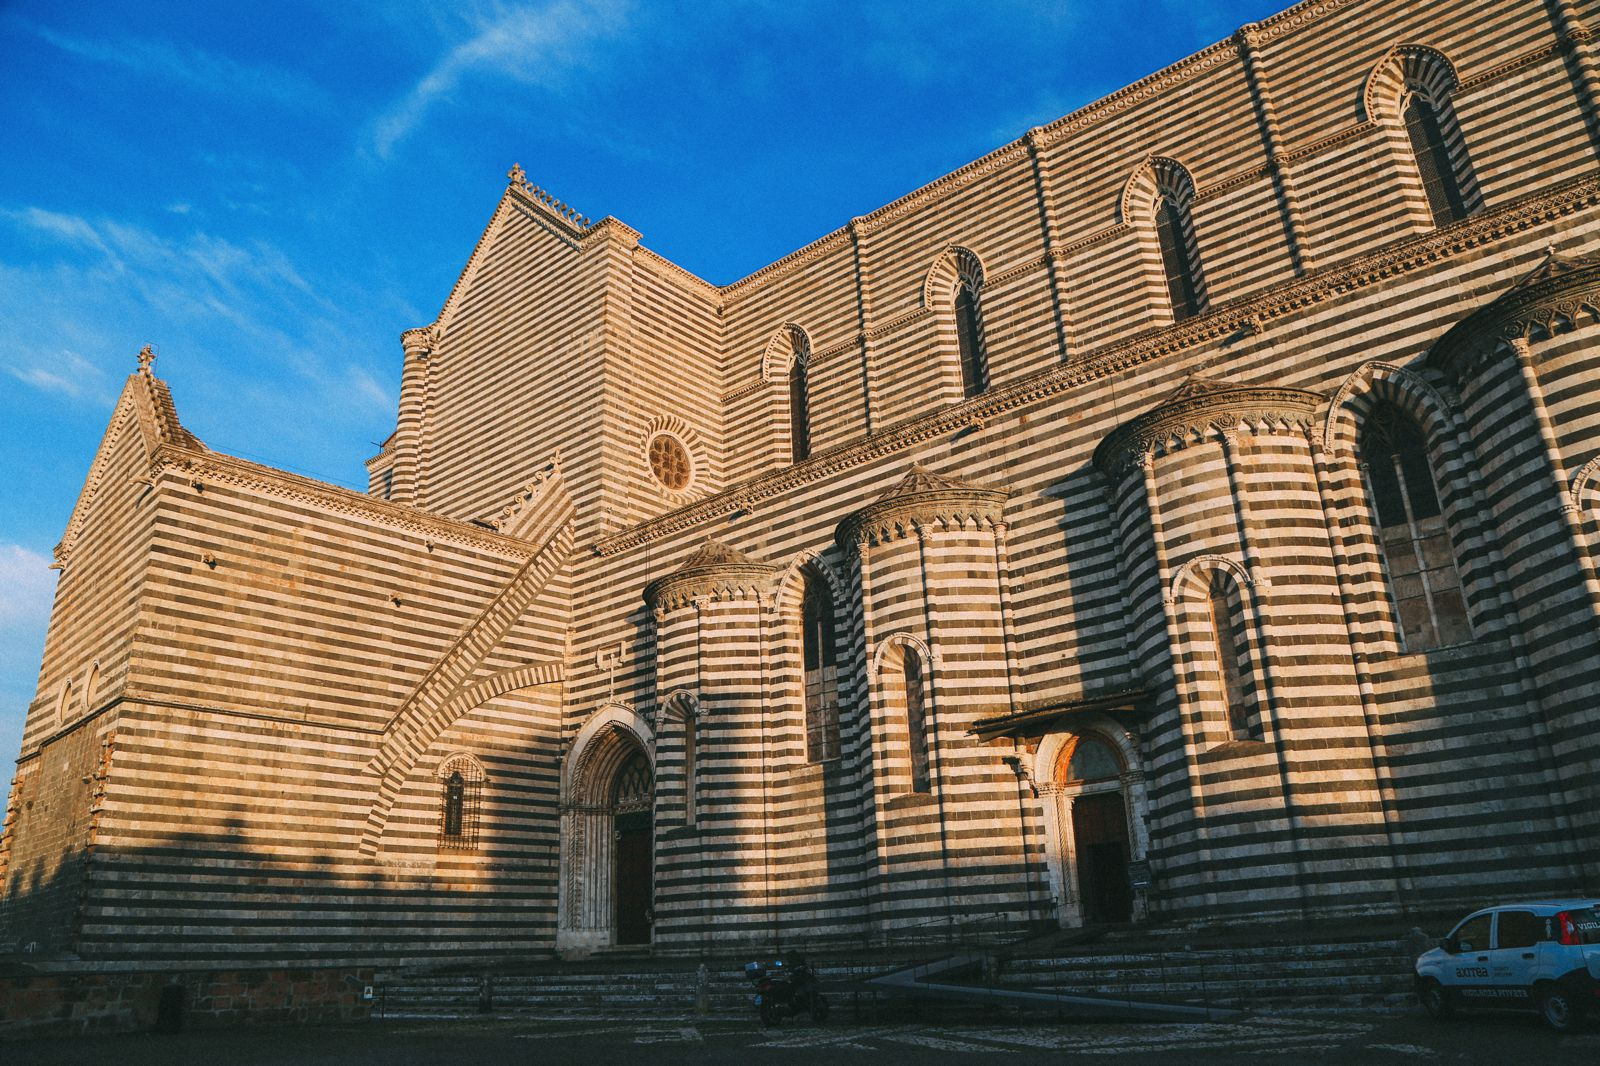 Orvieto - The Most Dramatic City In Europe (4)